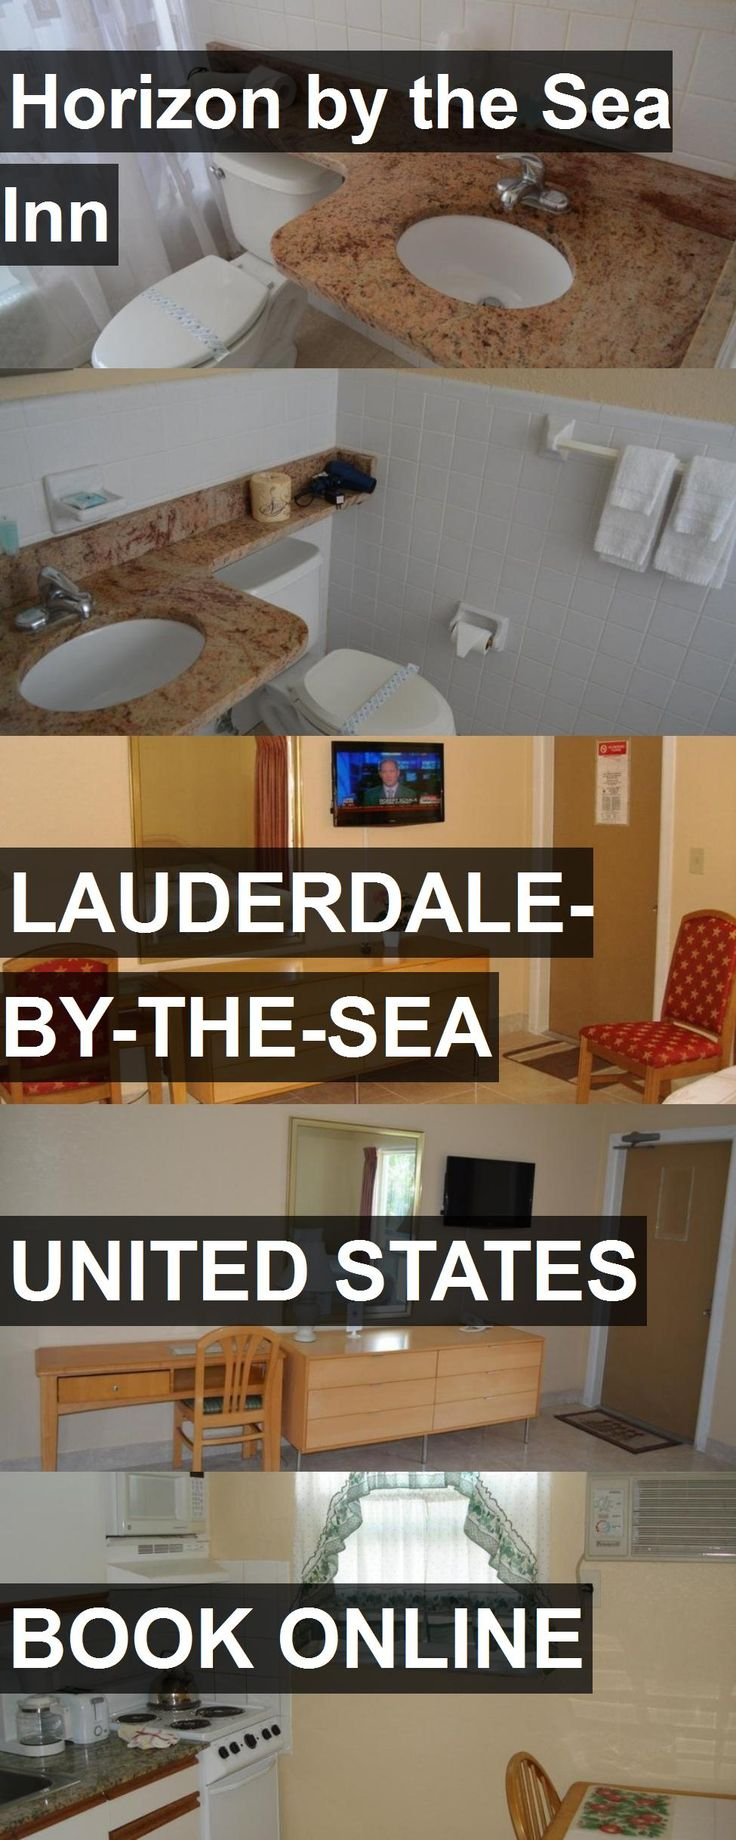 Hotel Horizon by the Sea Inn in Lauderdale-By-The-Sea, United States. For more information, photos, reviews and best prices please follow the link. #UnitedStates #Lauderdale-By-The-Sea #travel #vacation #hotel